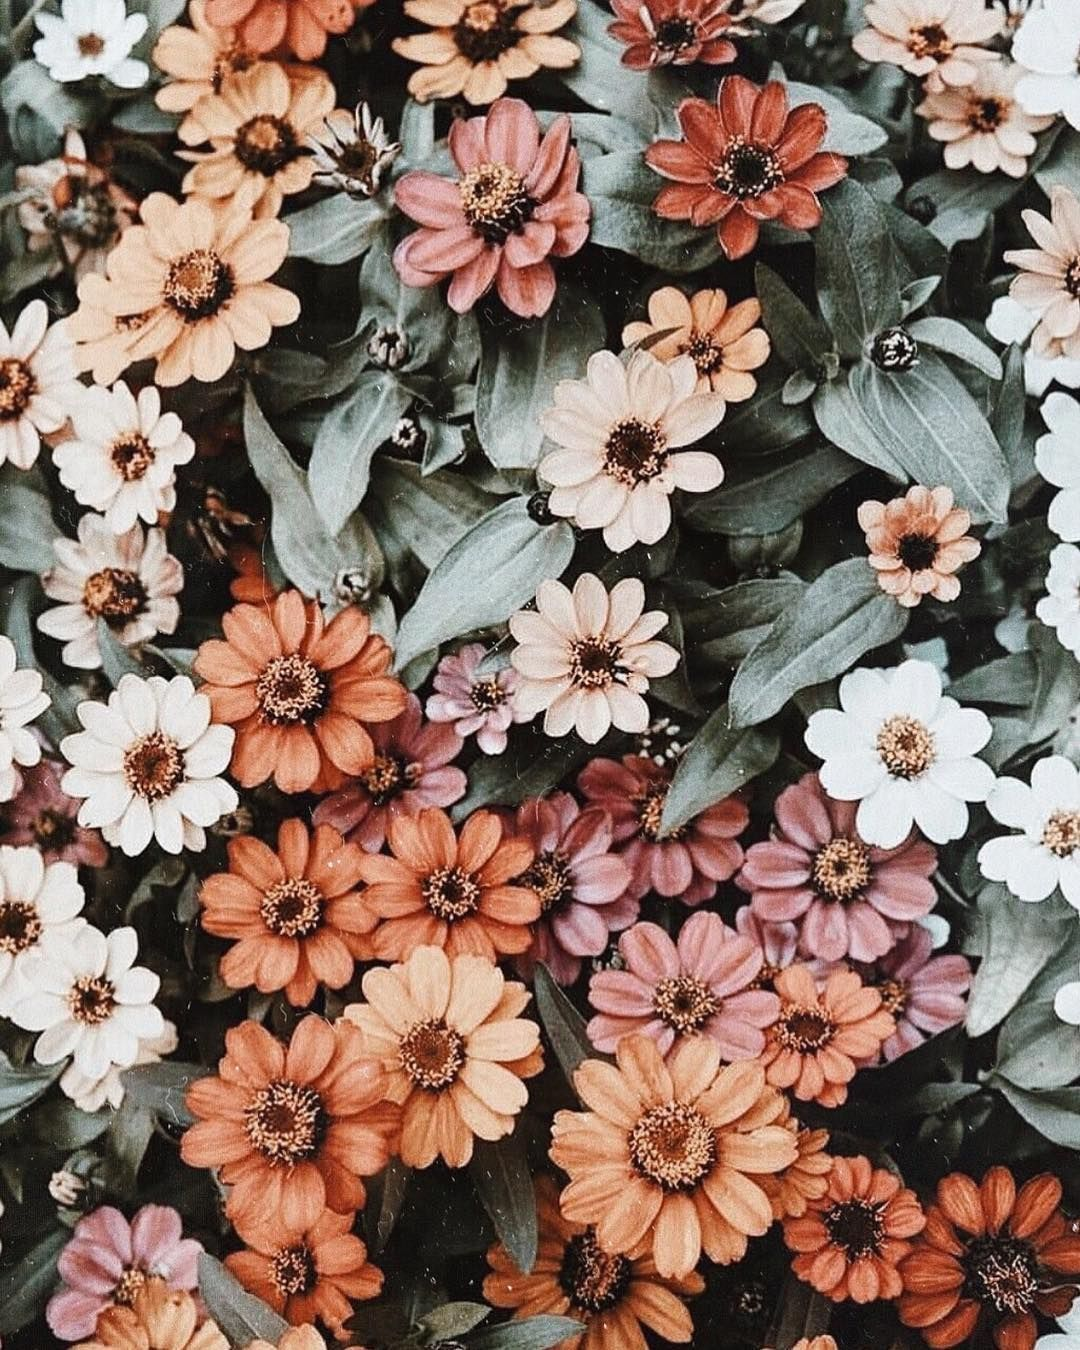 Desktop Wallpaper Flowers Aesthetic in 2020 Flower